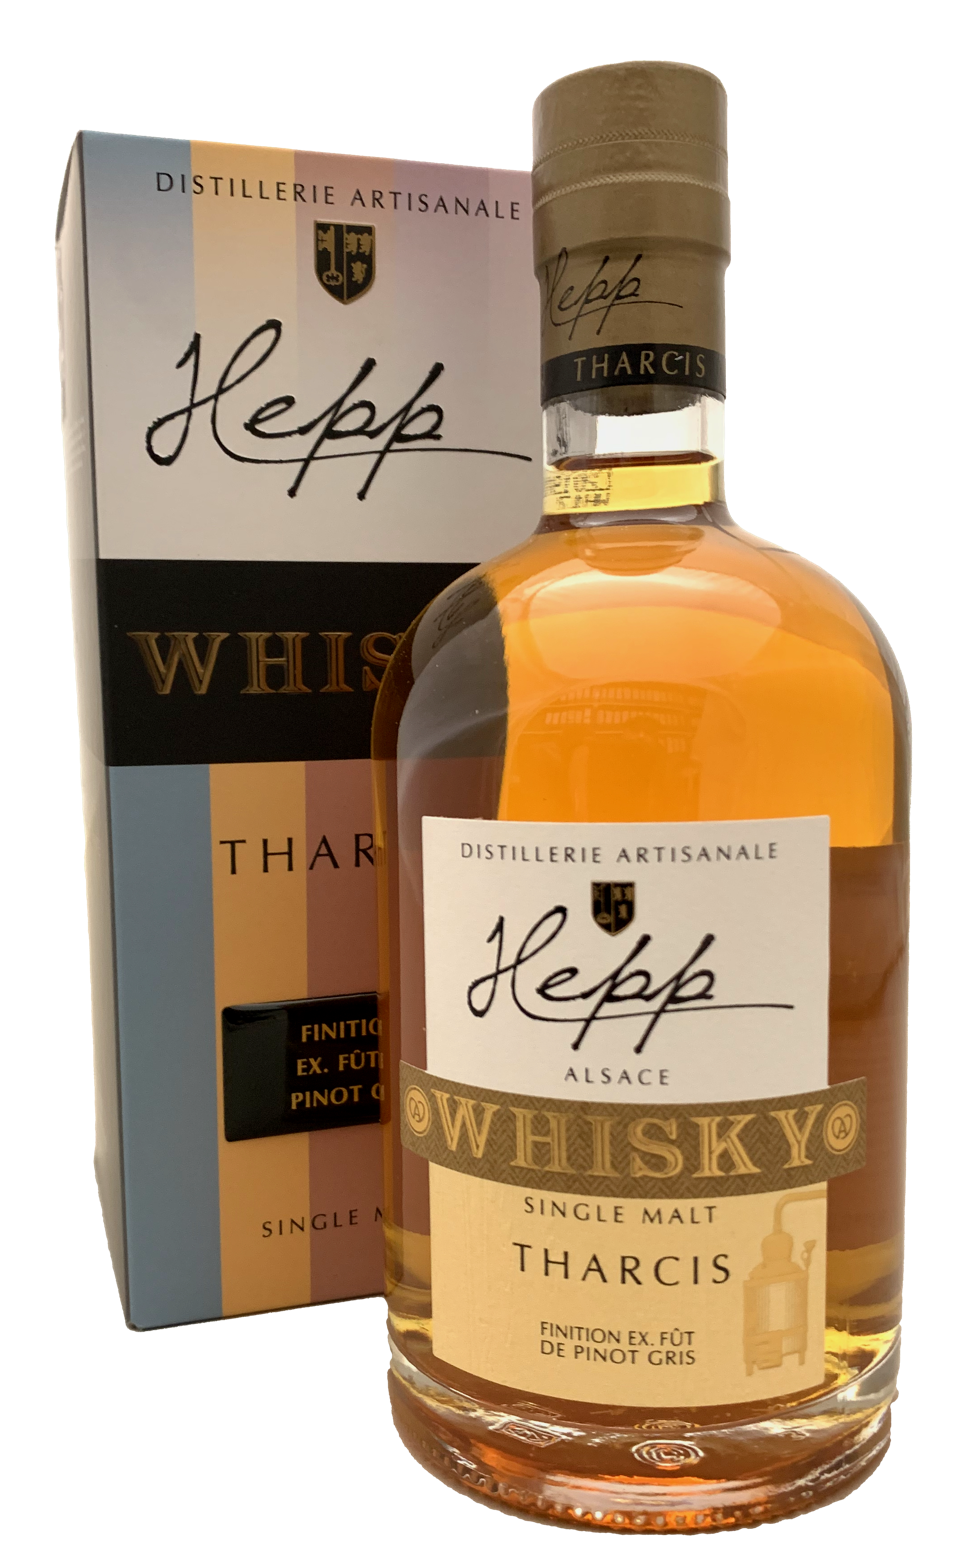 Distillerie Hepp Finition Pinot Gris Single Malt Whisky Alsacien